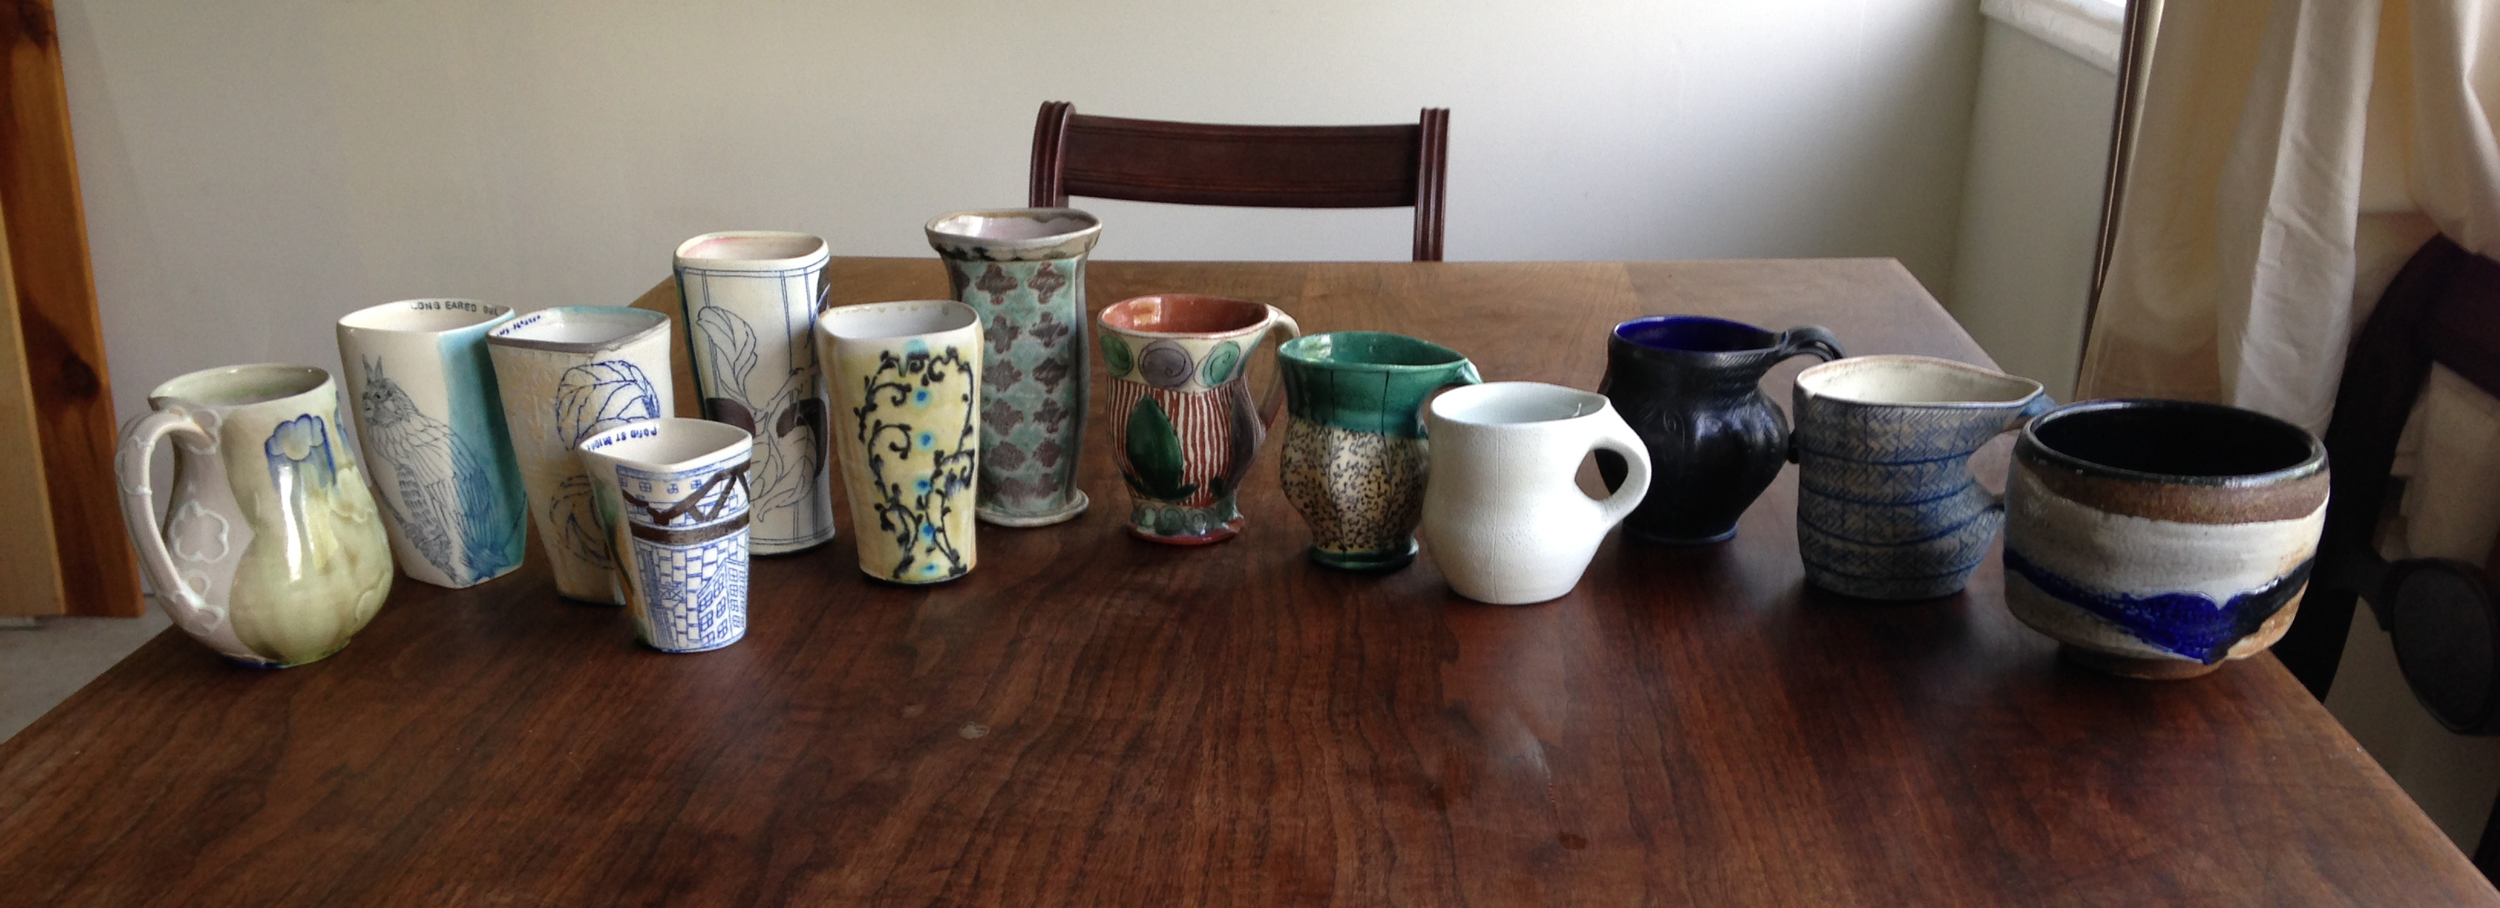 One of the greatest parts of this project was finding these older cups of Julia Galloway's sprinkled among the wall of cup.  She told me that she kept one piece of her own from each year.  A visual record of her life's work, if you may.  I really LOVED this and thought  this should be shown.  So from left to right you see her most recent work trailing over to some of her first pieces.  It's quite a journey!